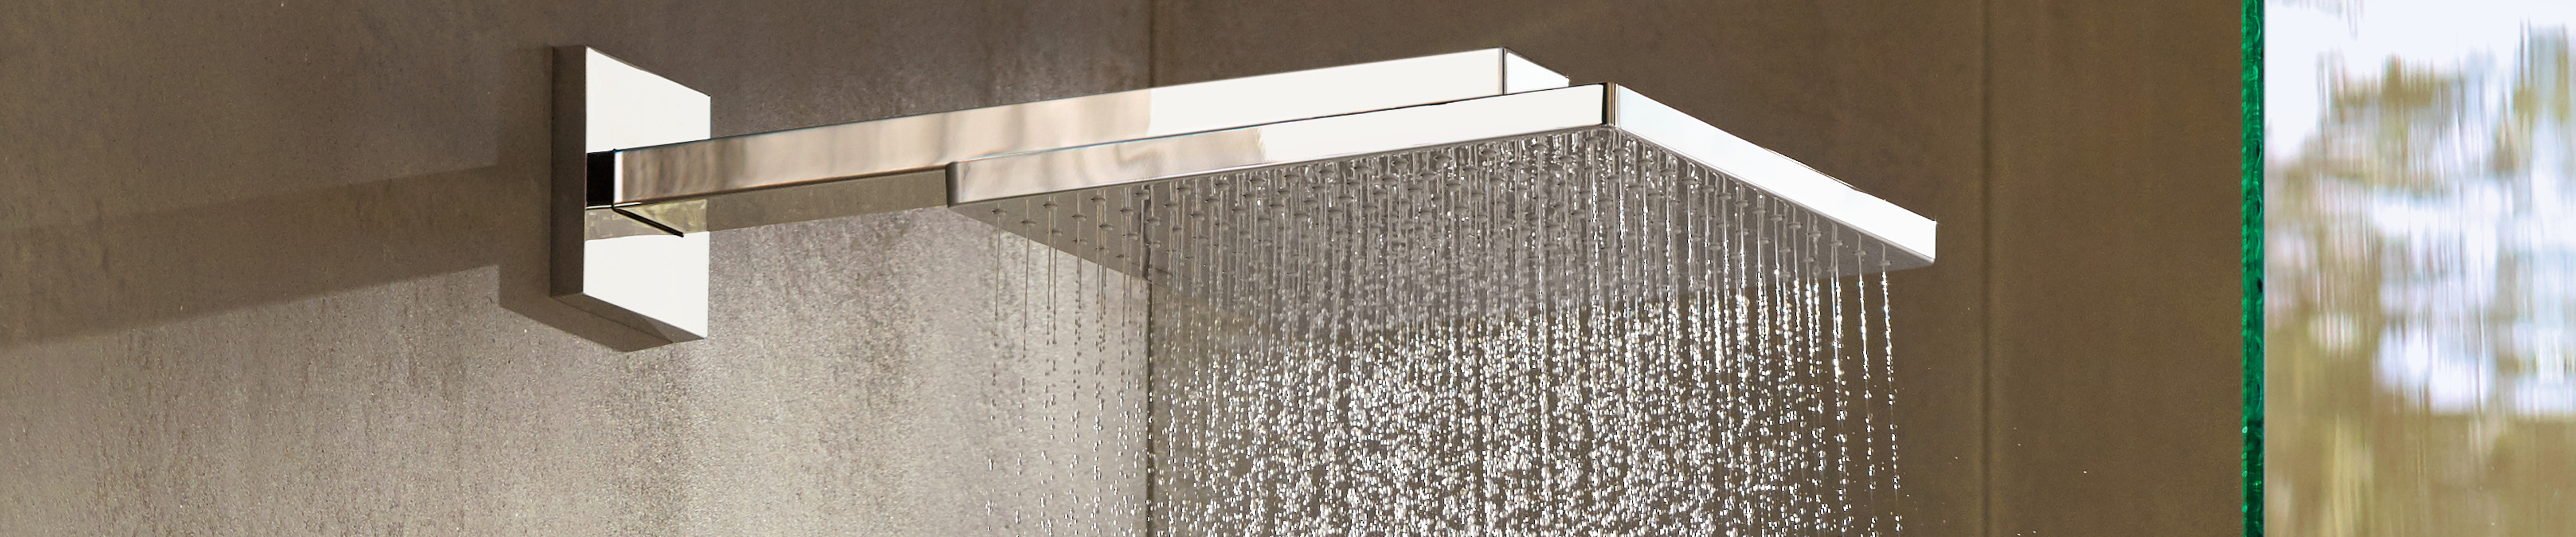 Hansgrohe Croma 2jet Kopfdusche Brause Chrom Dusche Hansgrohe Croma Select E 180 2jet